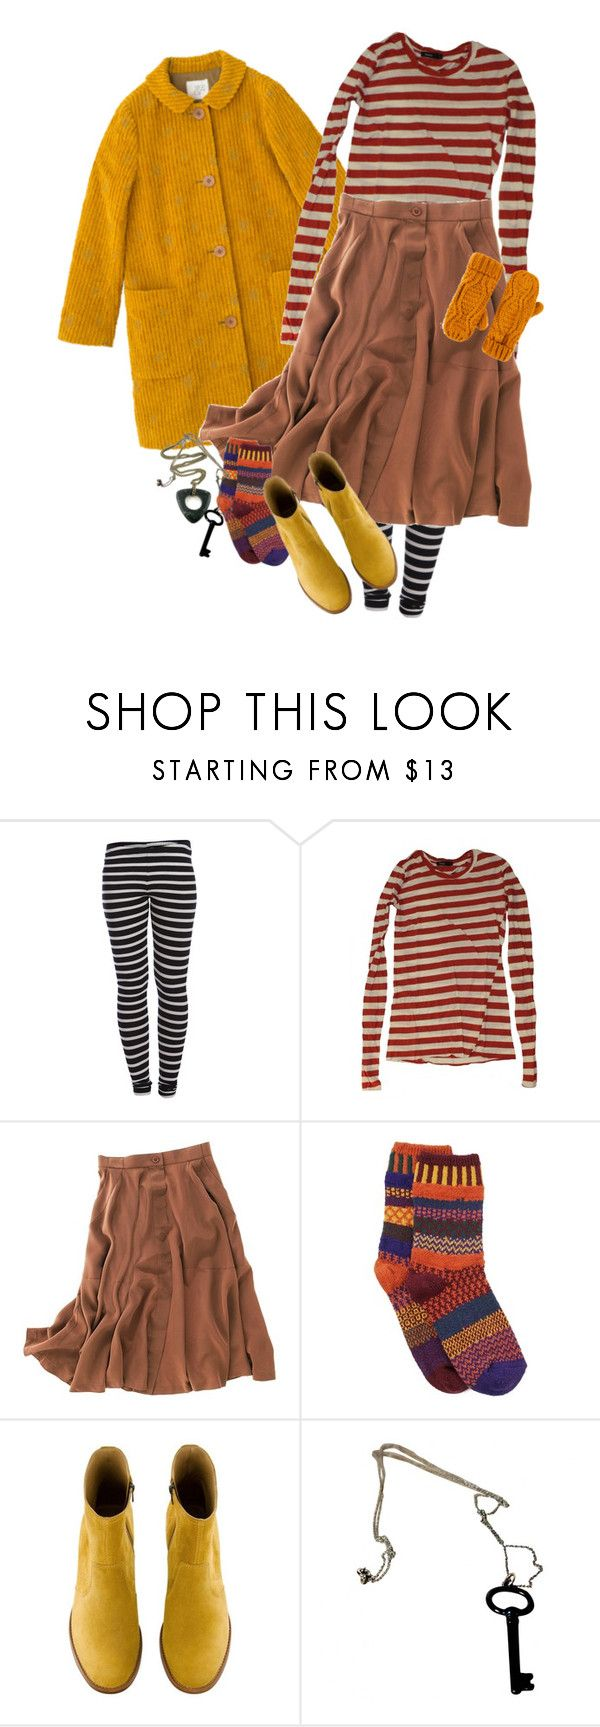 """""""Coralline Jones,,"""" by radc00l ❤ liked on Polyvore featuring Sally Scott, Pieces, Bassike, Madewell, Solmate Socks, A.P.C., CO, Pull&Bear, Halloween and LastMinute"""